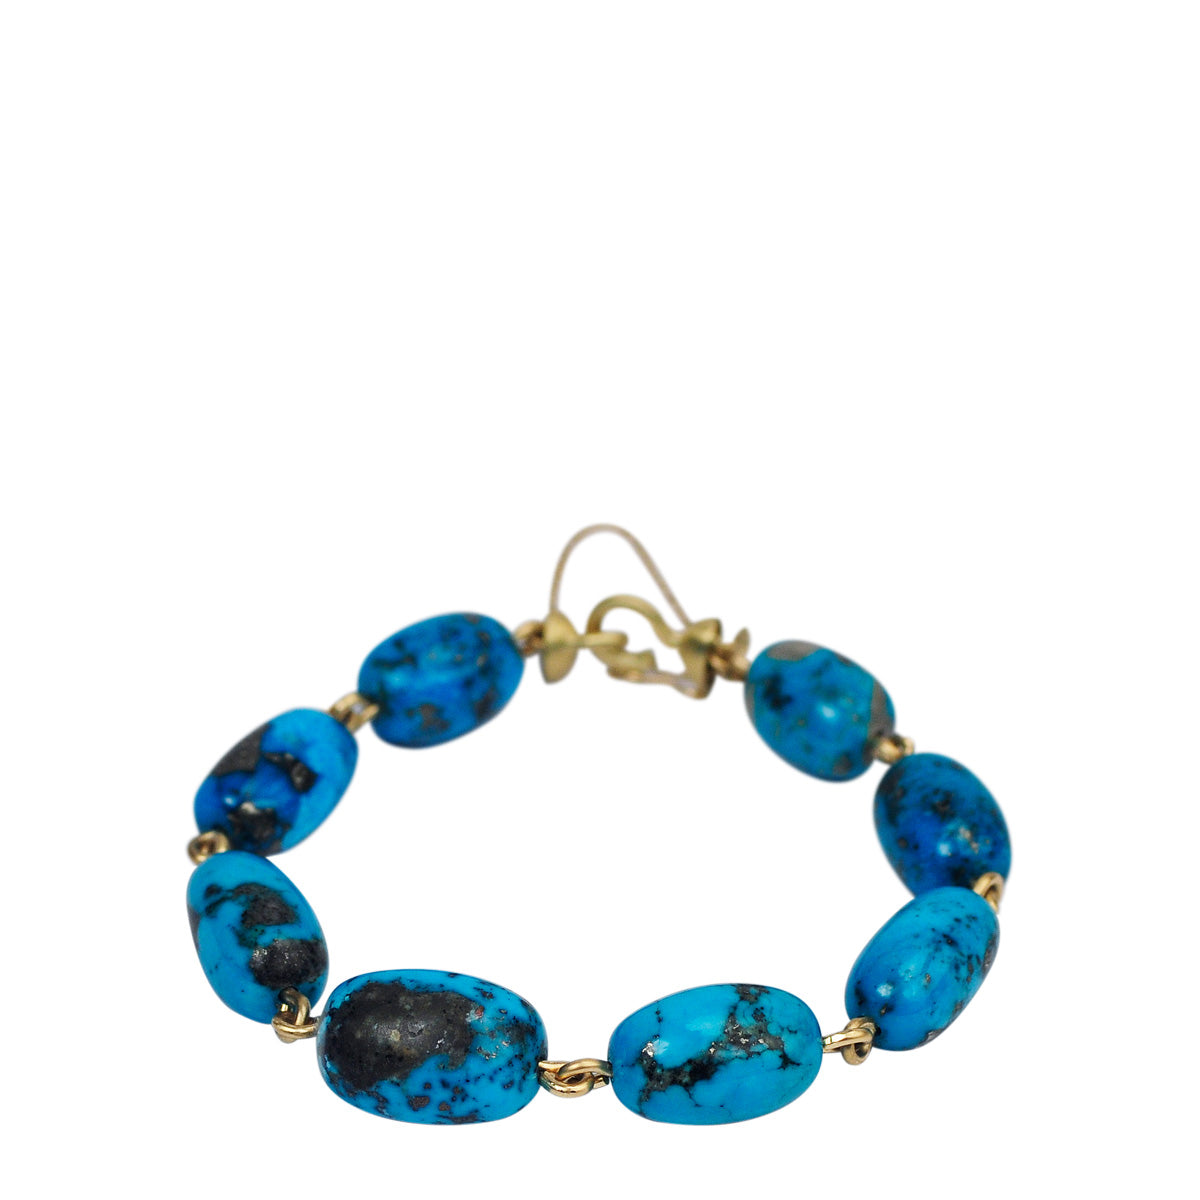 18K Gold Large Persian Turquoise Beaded Bracelet on Wire